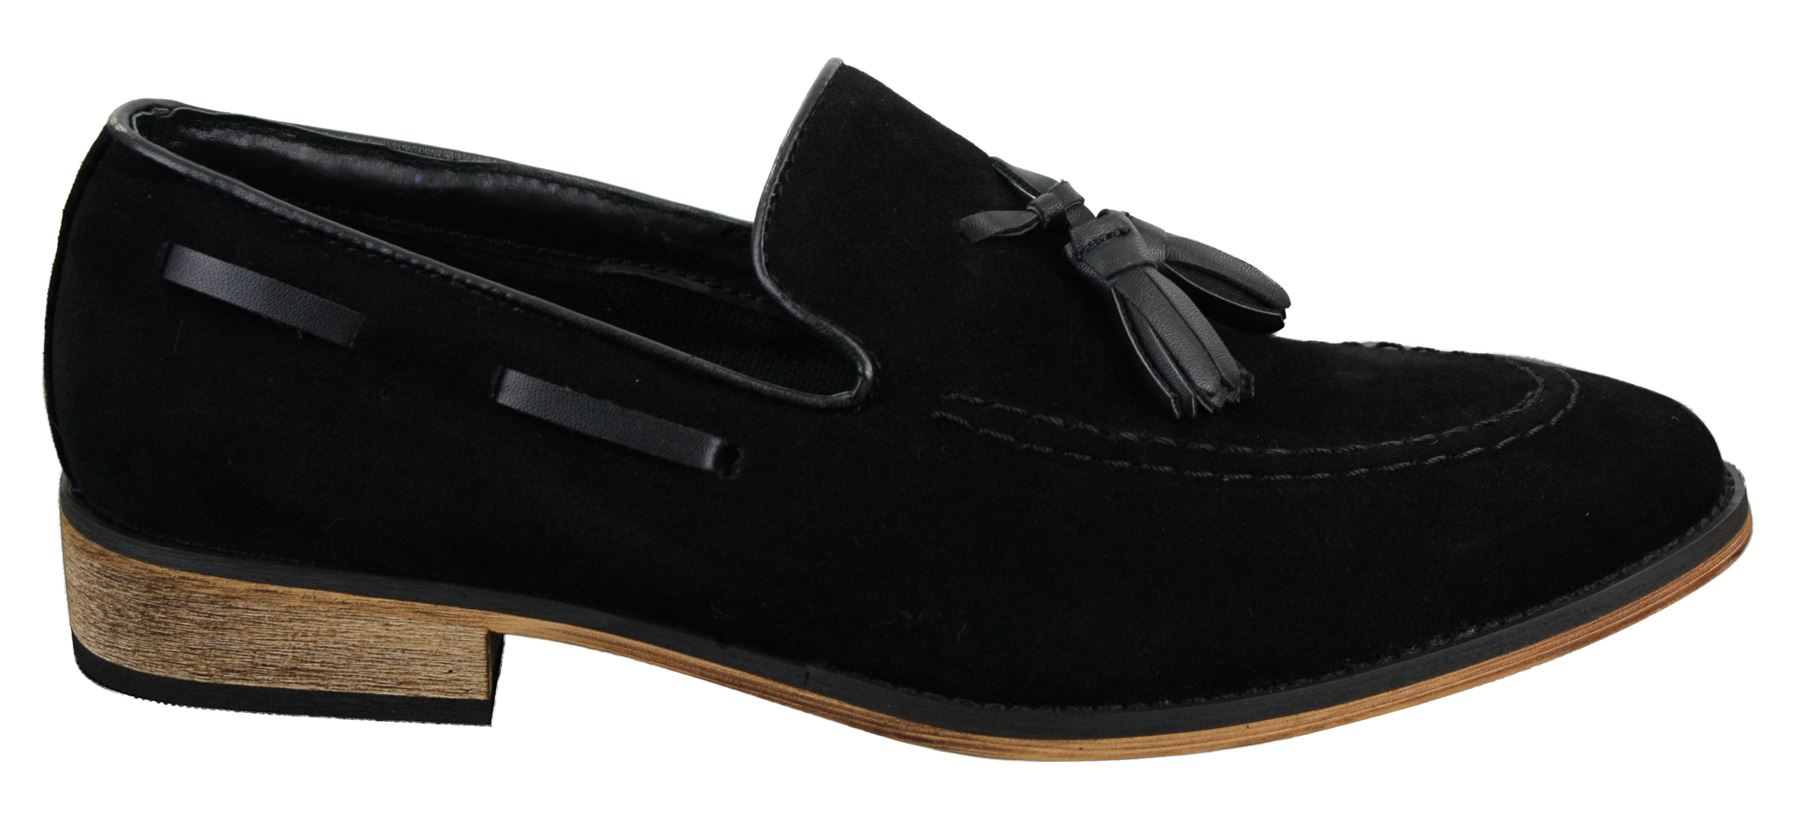 mens italian slip on driving shoes loafers tassle suede